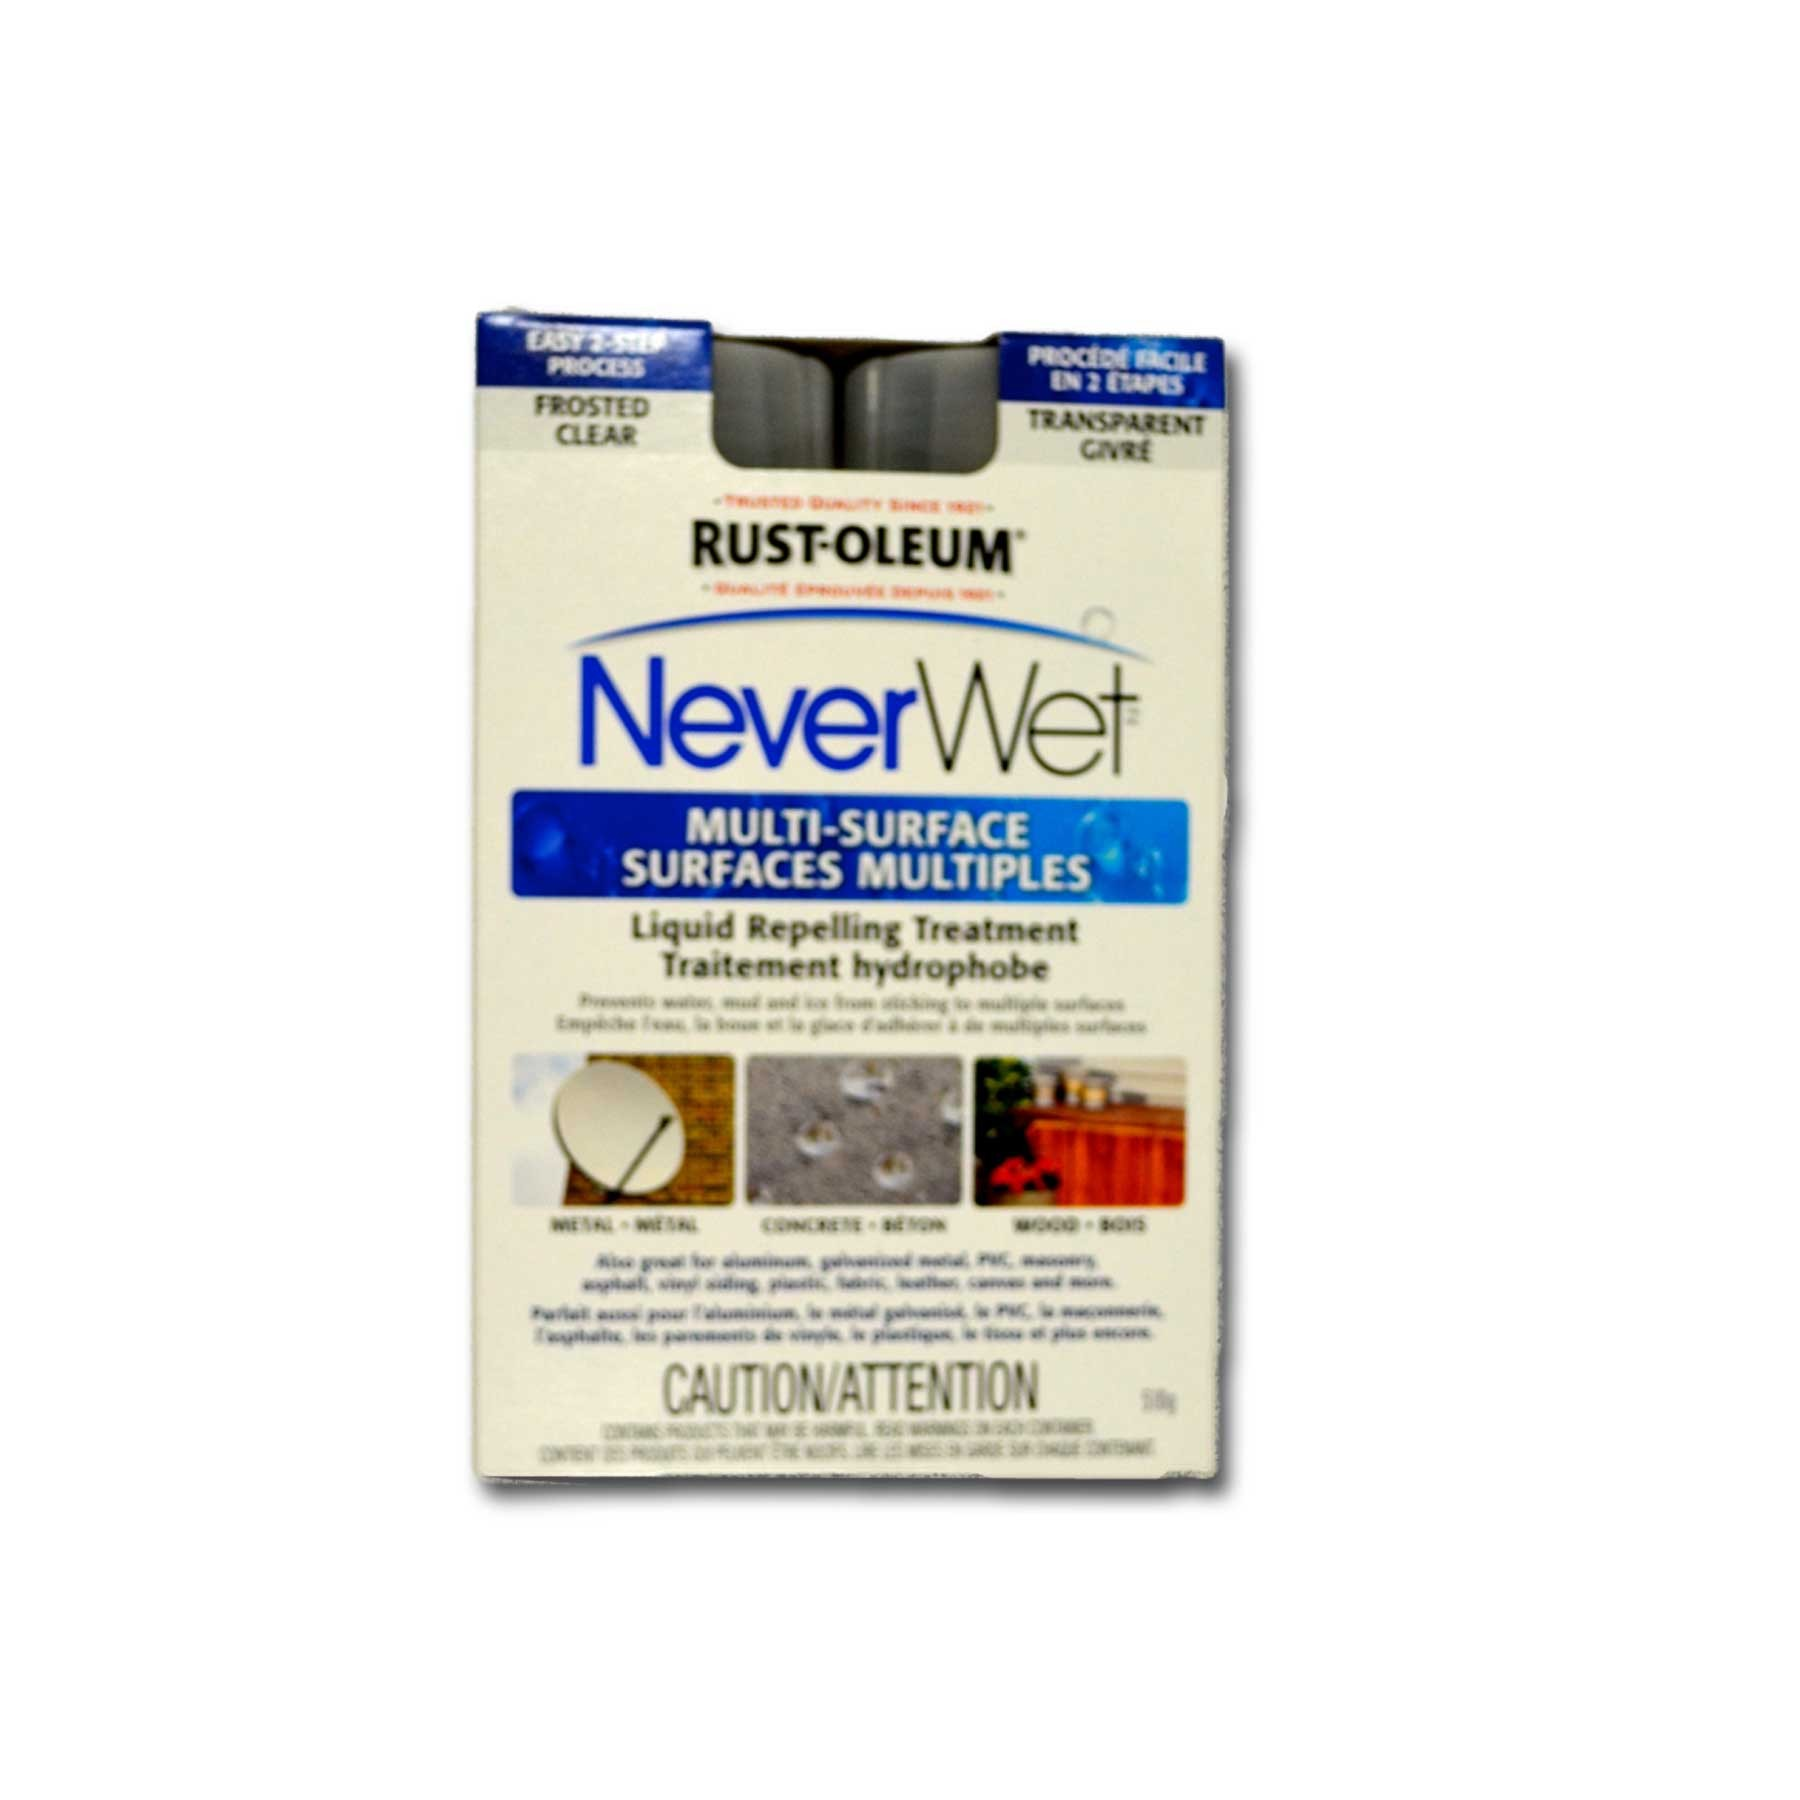 NeverWet Rustoleum Multi Surface